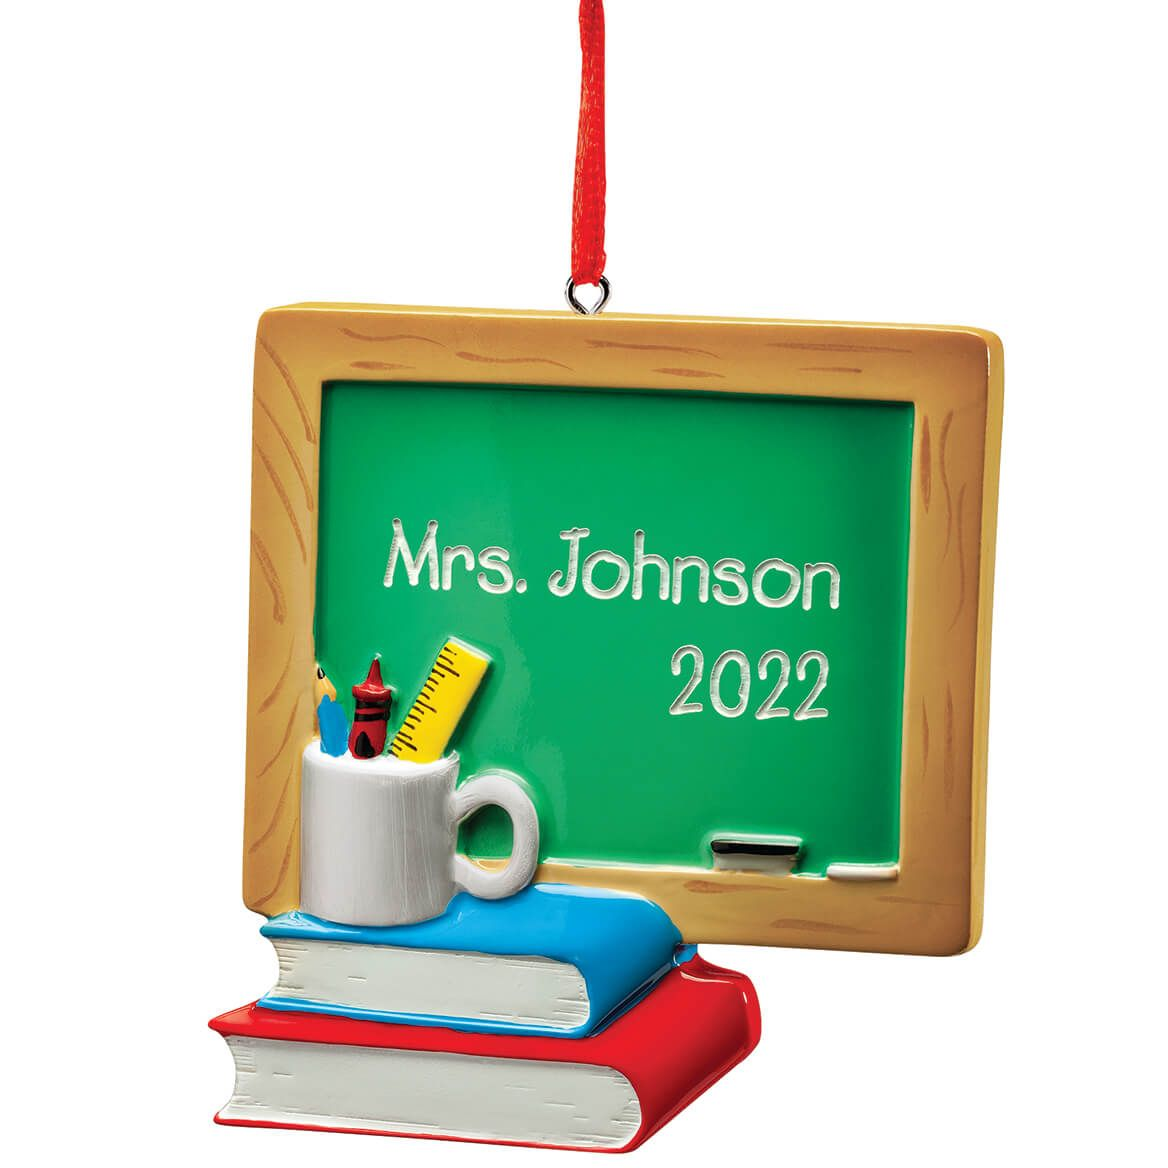 Personalized Chalkboard and Books Ornament-372415